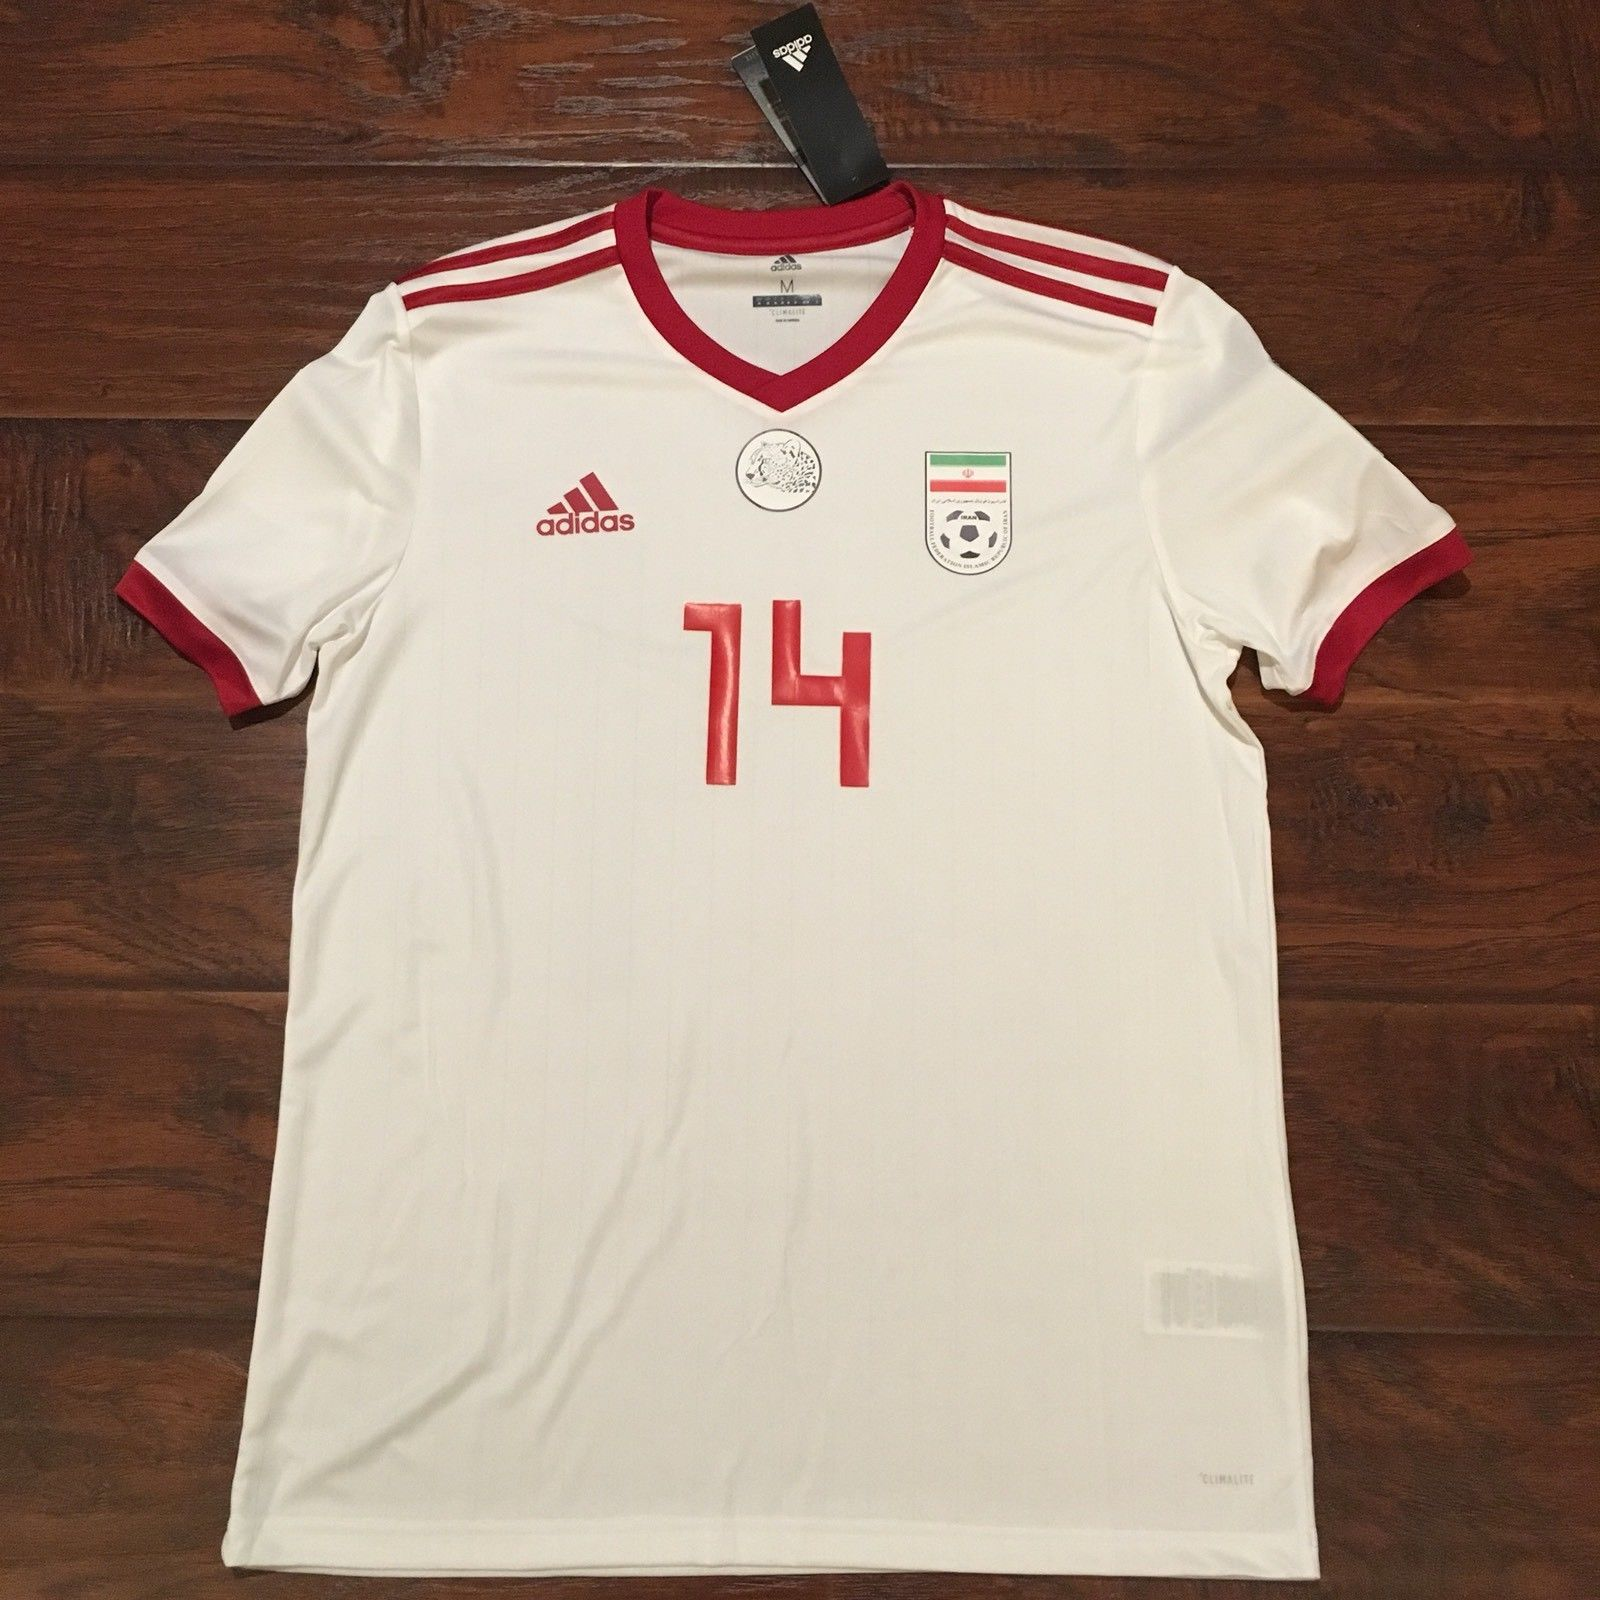 2018 Iran Home Jersey  14 Saman Ghoddos Medium Adidas World Cup Team Melli  NEW Discount Price 120.00 Free Shipping Buy it Now a1da2908b